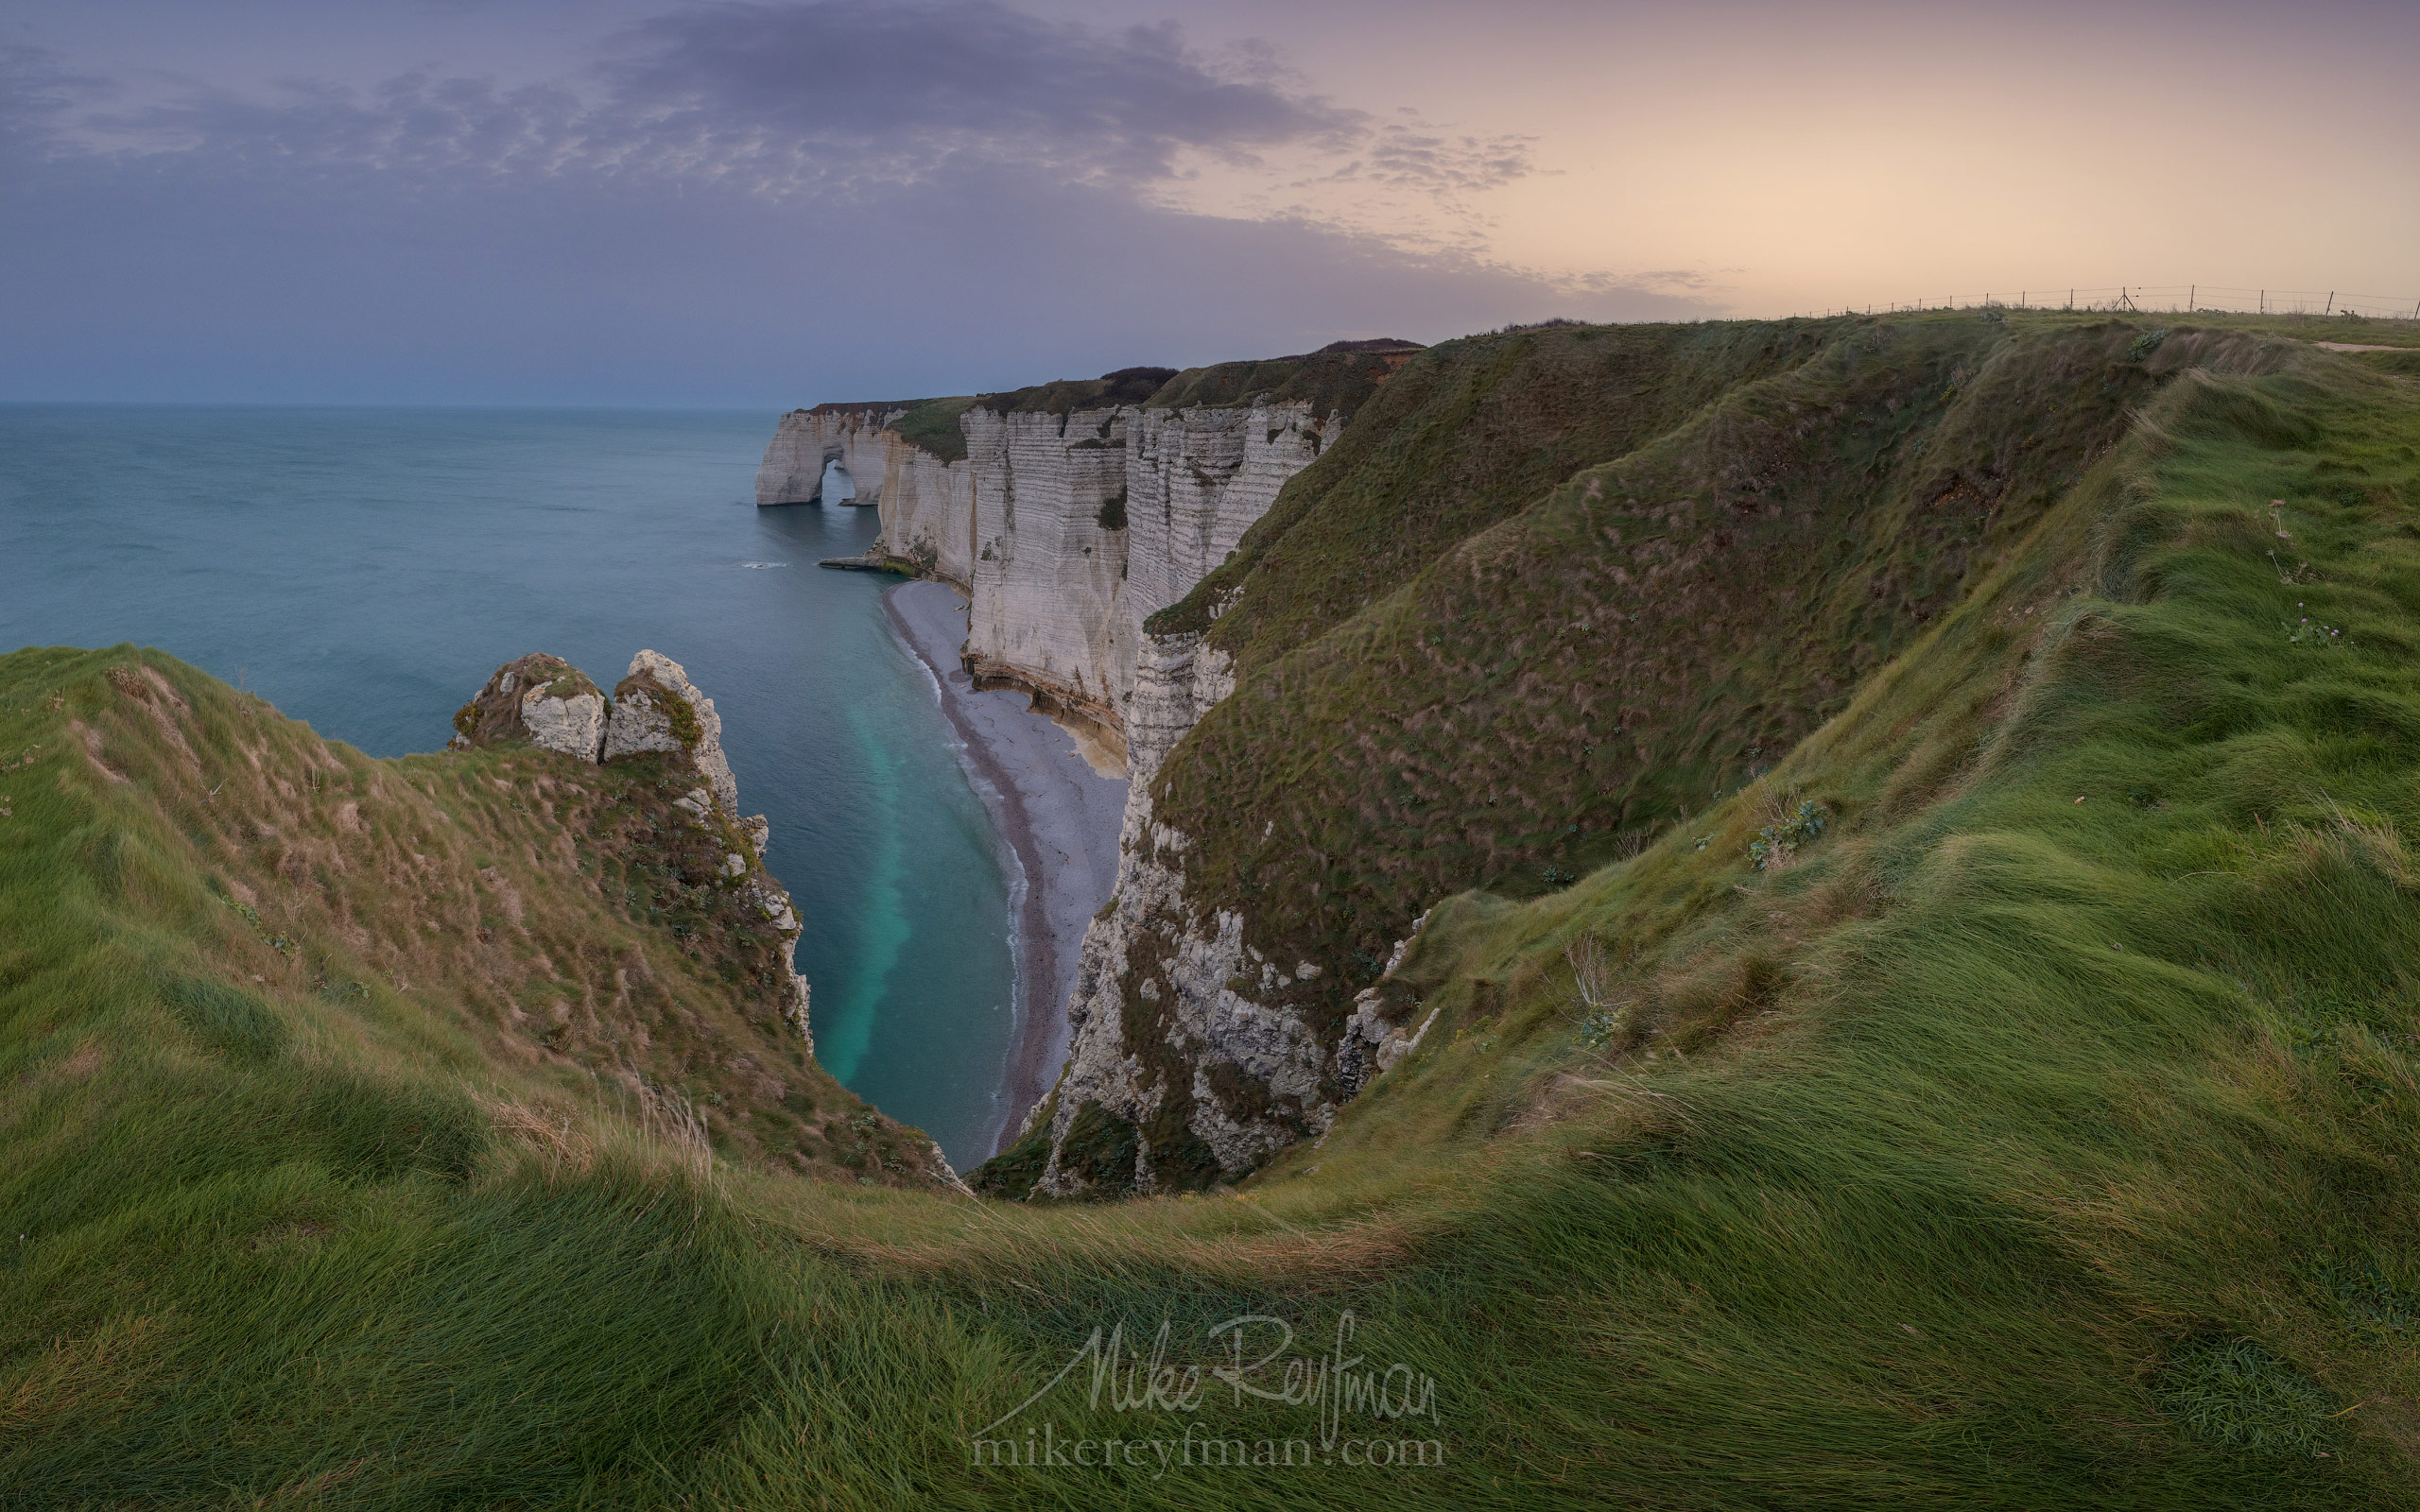 Manneporte Arch. Cote d'Albatre – The Alabaster Coast. Ertretat, Normandy, France ET1-MR50A0382l - White Chalk Cliffs and Arches of Alabaster Coast. Etretat, Upper Normandy, France - Mike Reyfman Photography